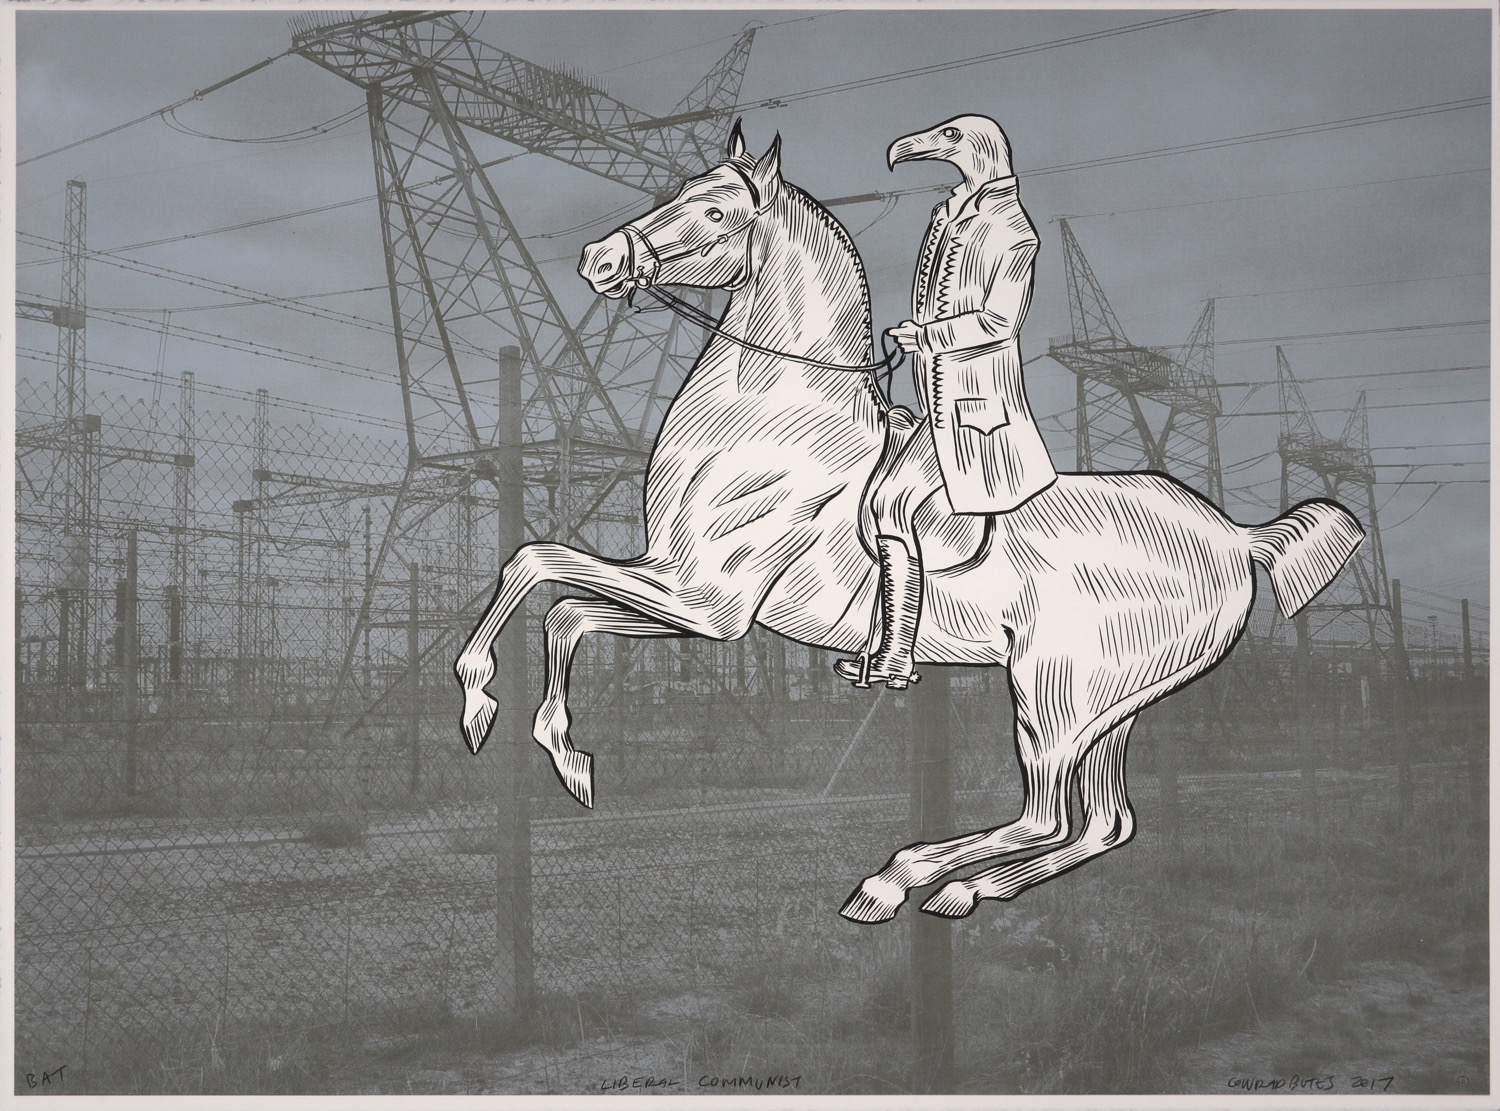 Vulture headed man on horseback with electrical power transmission station in the background